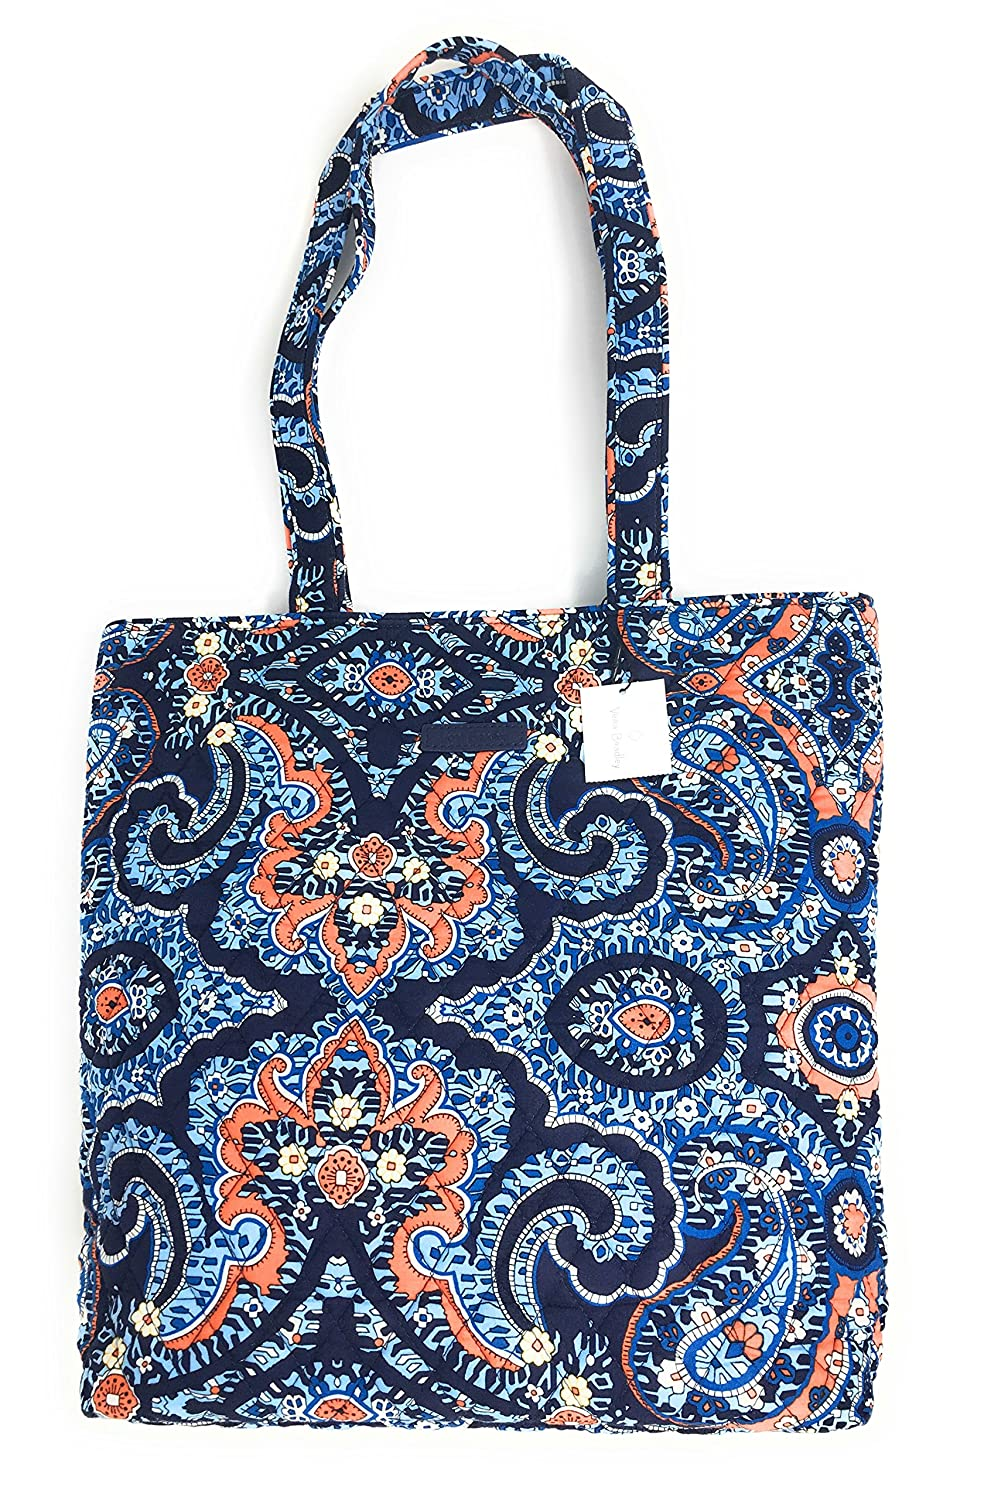 Vera Bradley Tote With Solid Color Interior (Updated Version) (Marrakesh) by Vera Bradley